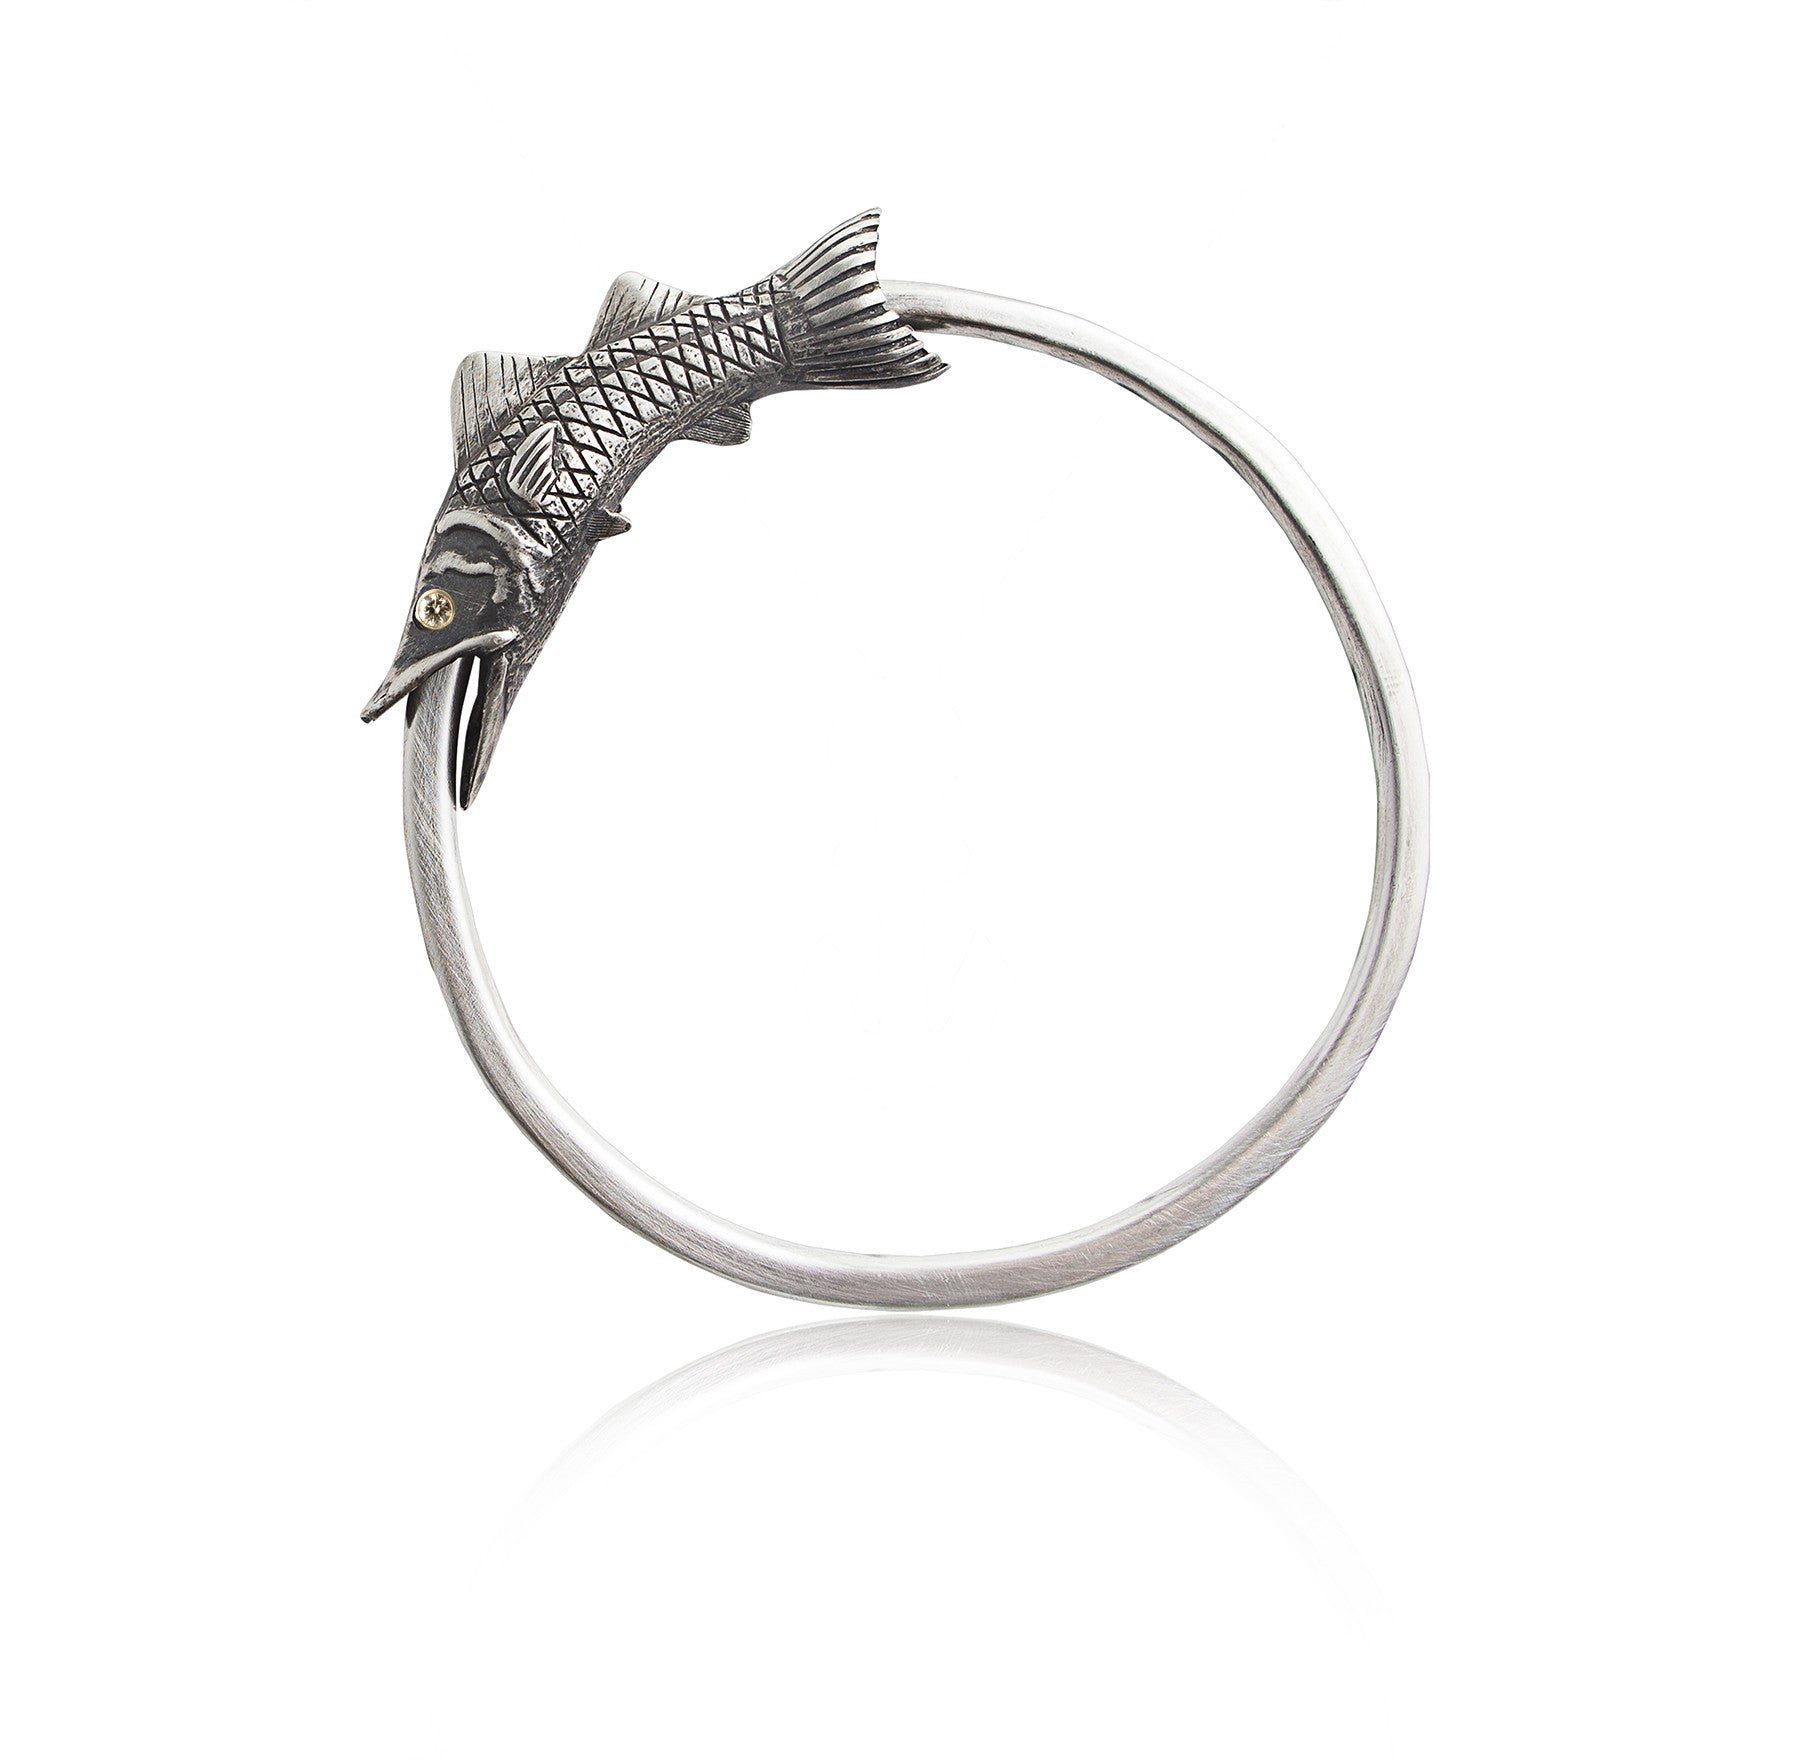 Snook Bangle